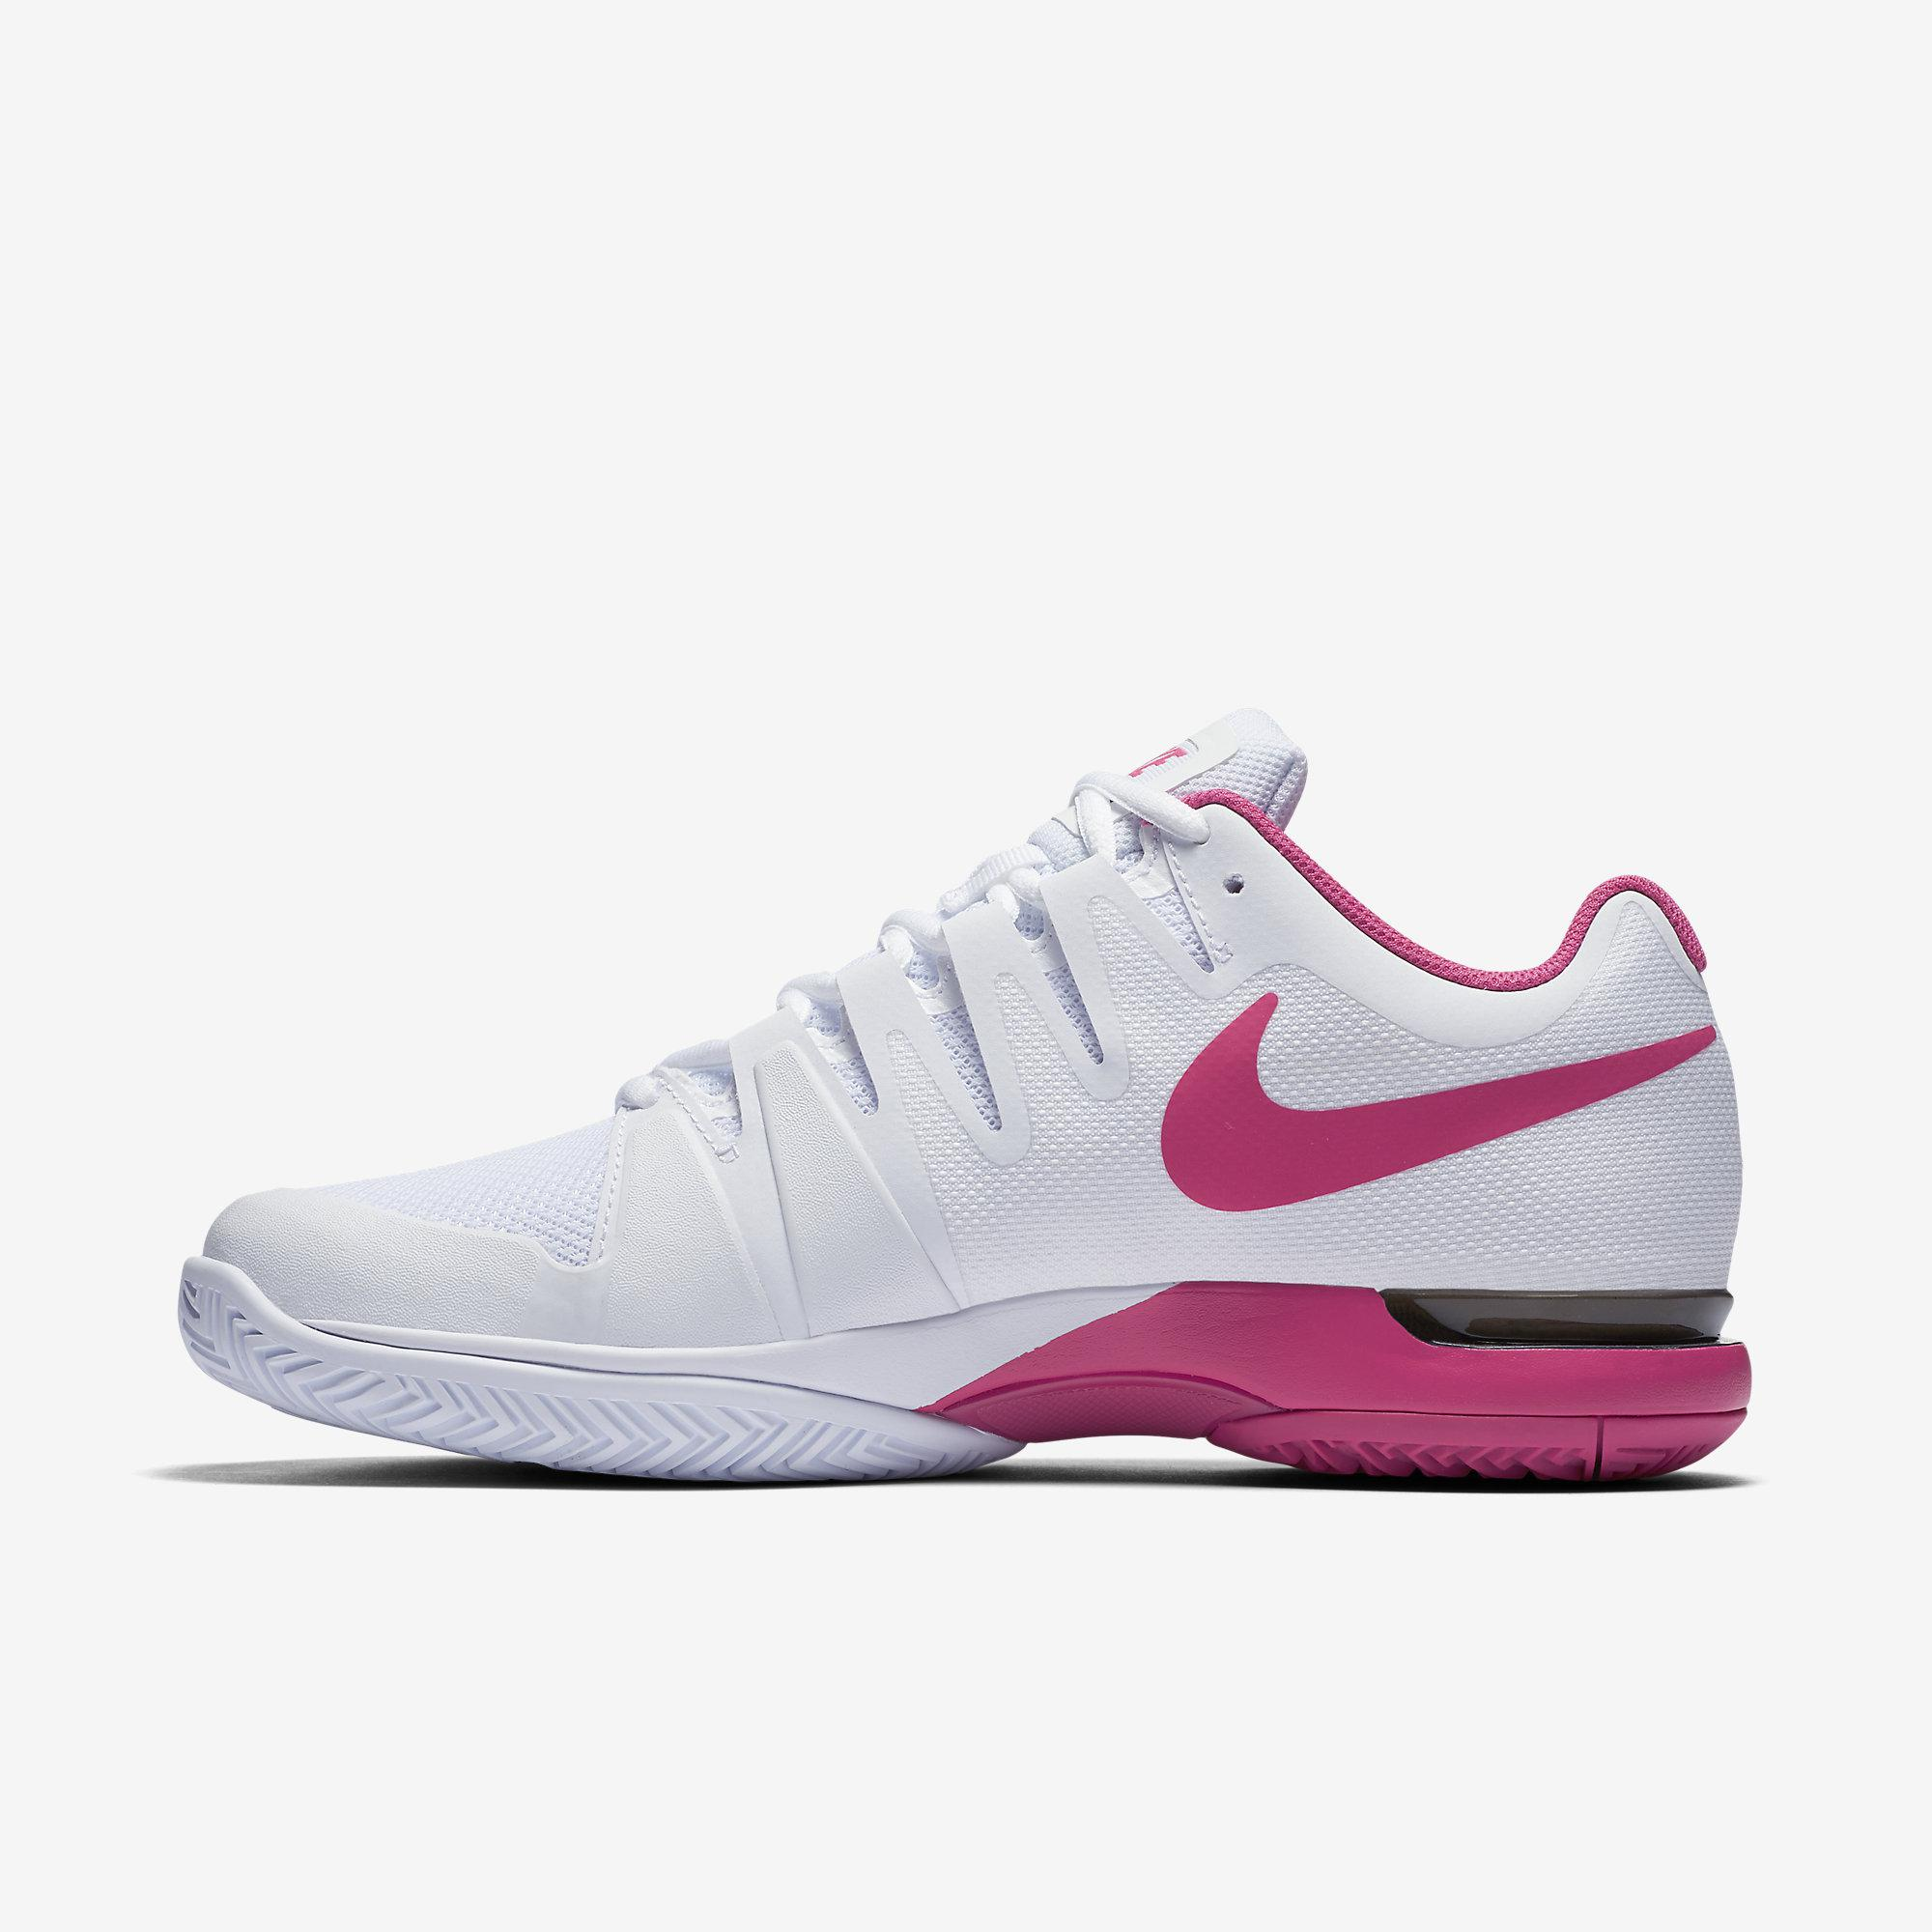 Womens Pink And Black Tennis Shoes